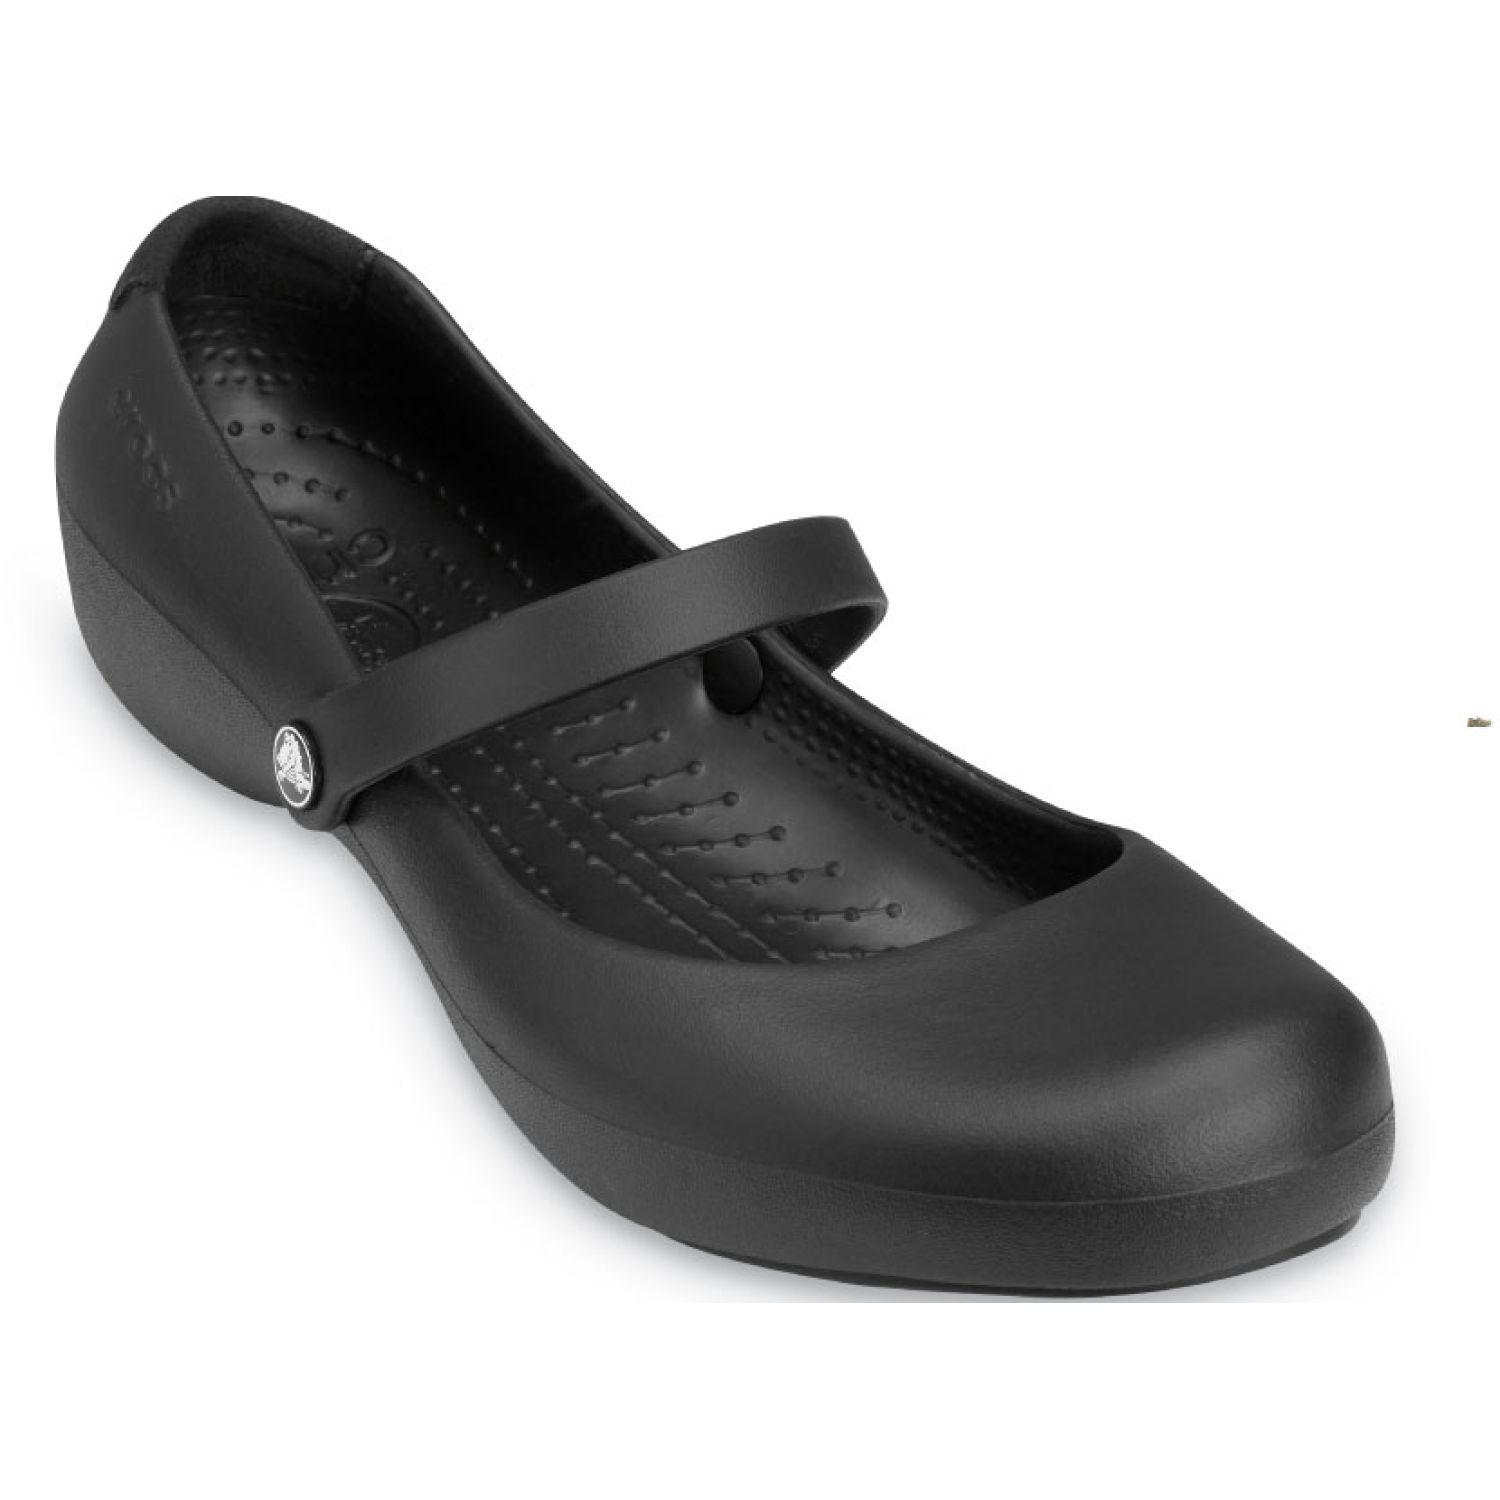 CROCS Women'S Alice Work Flat Negro Flats